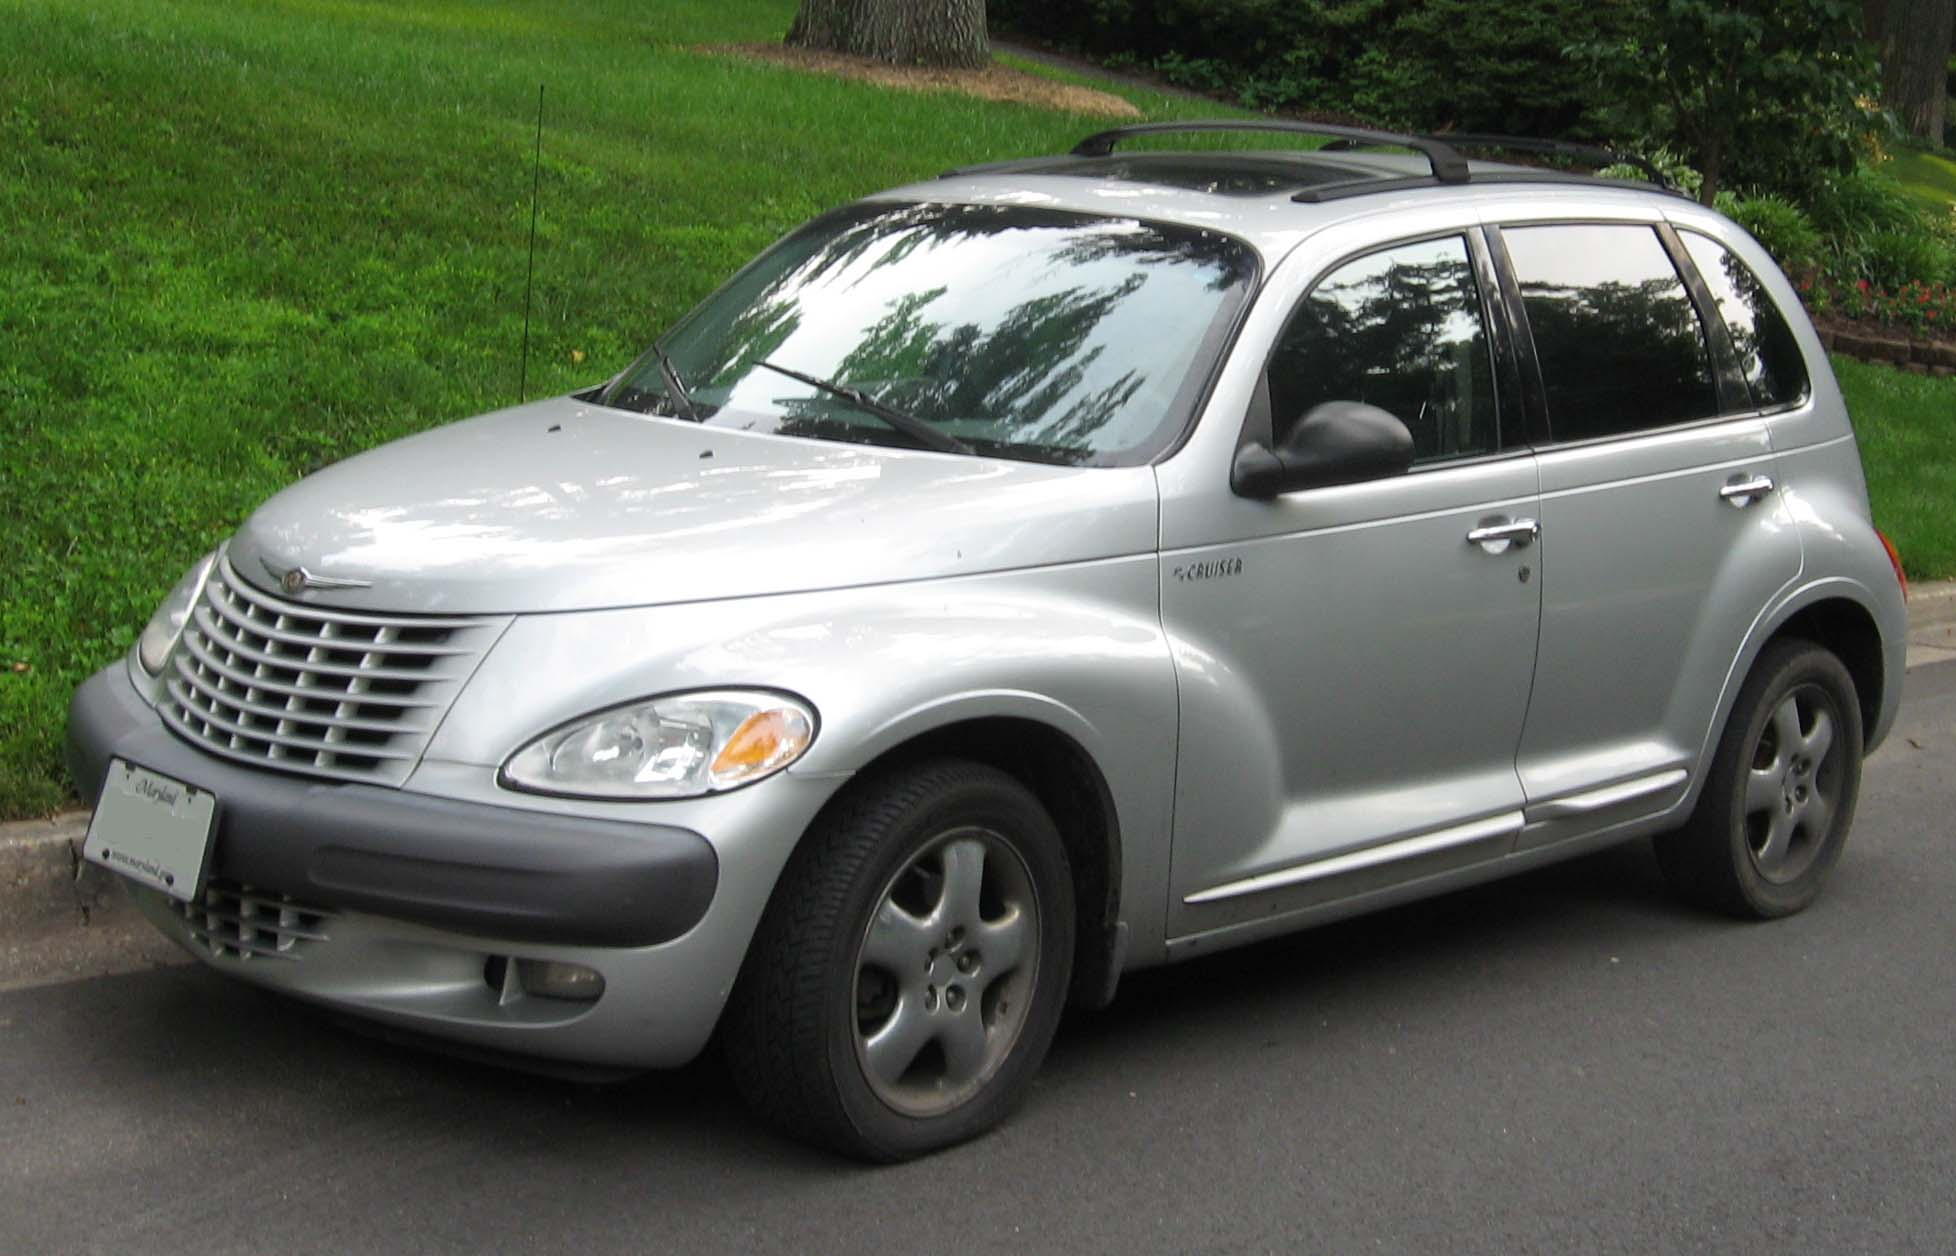 2005 Chrysler Pt Cruiser #5